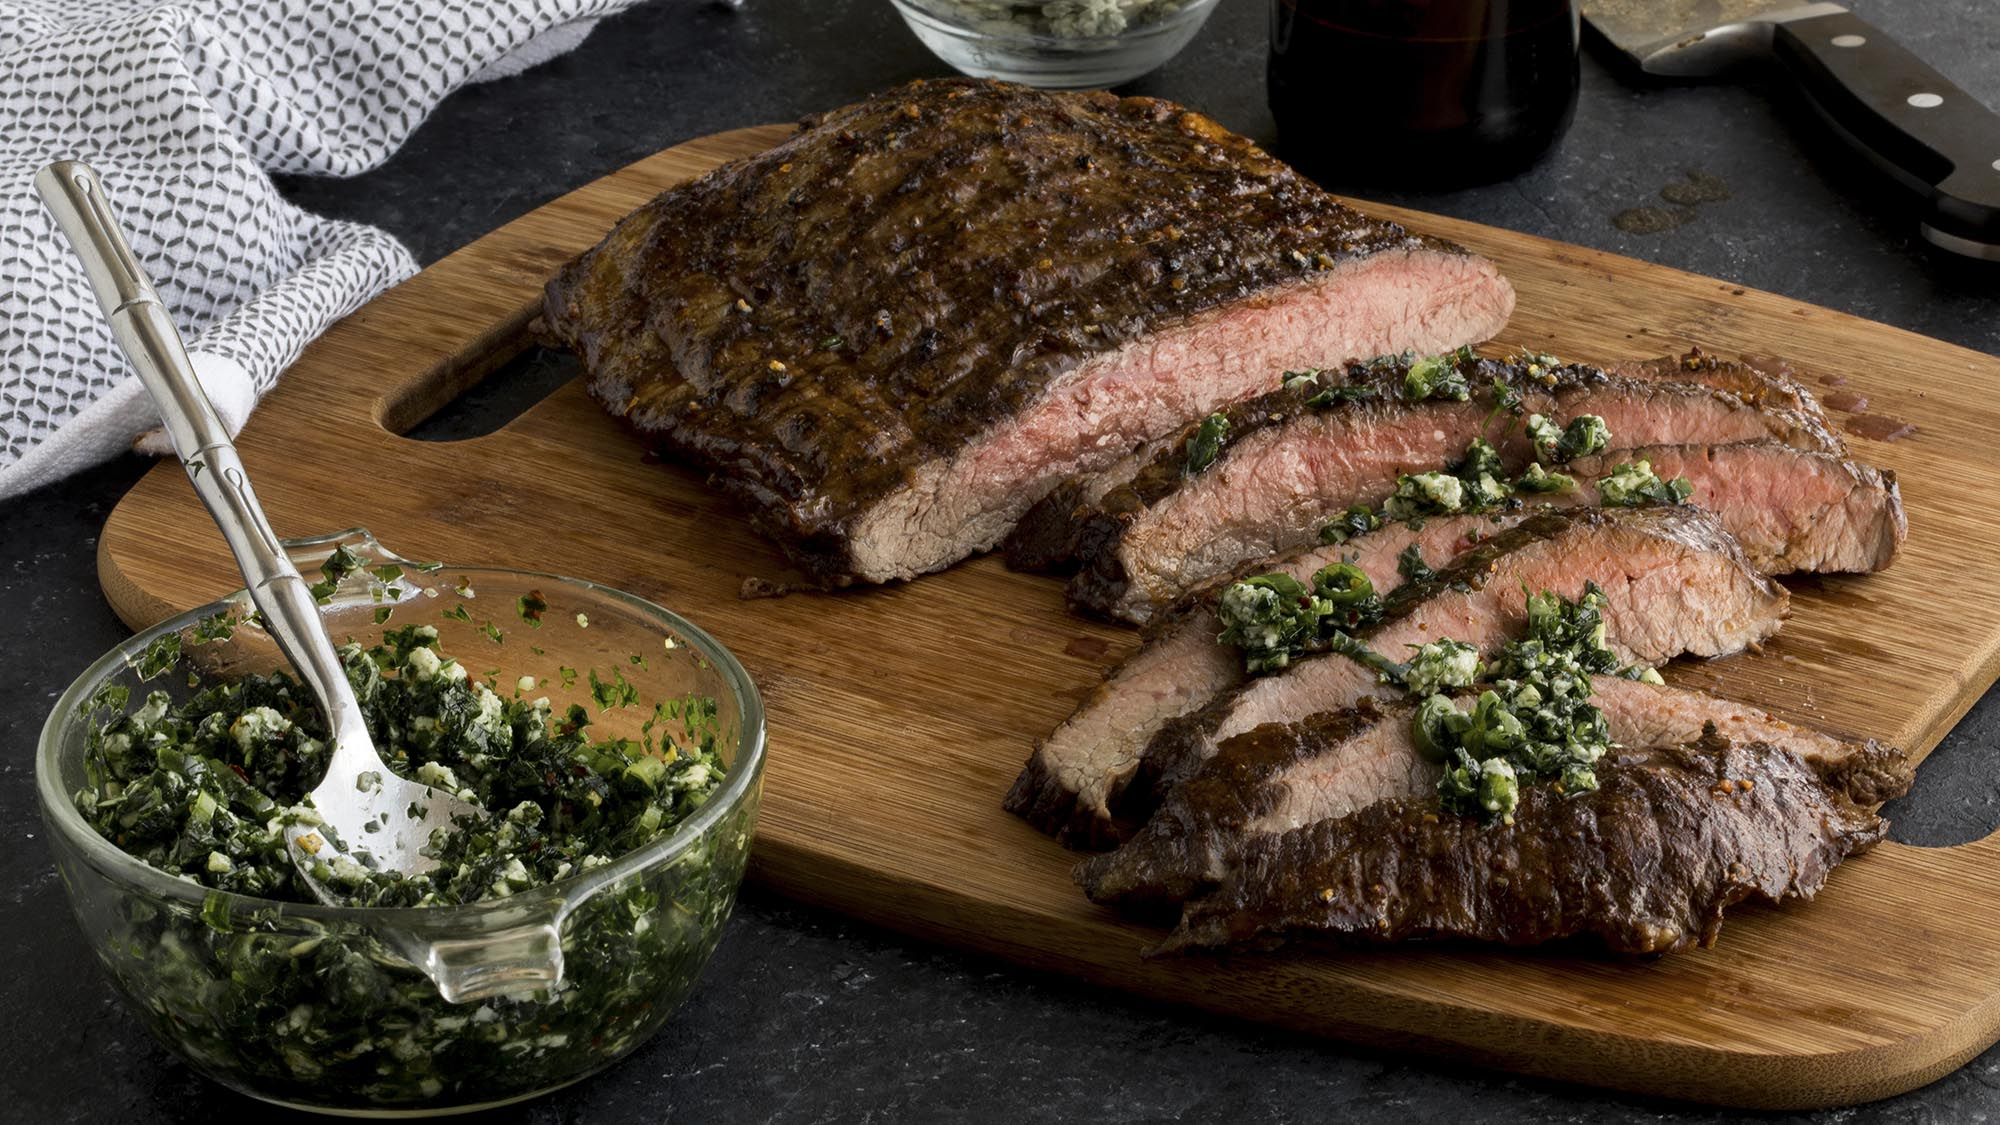 McCormick Grill Mates Beer Marinated Flank Steak with Blue CHeese Chimichurri